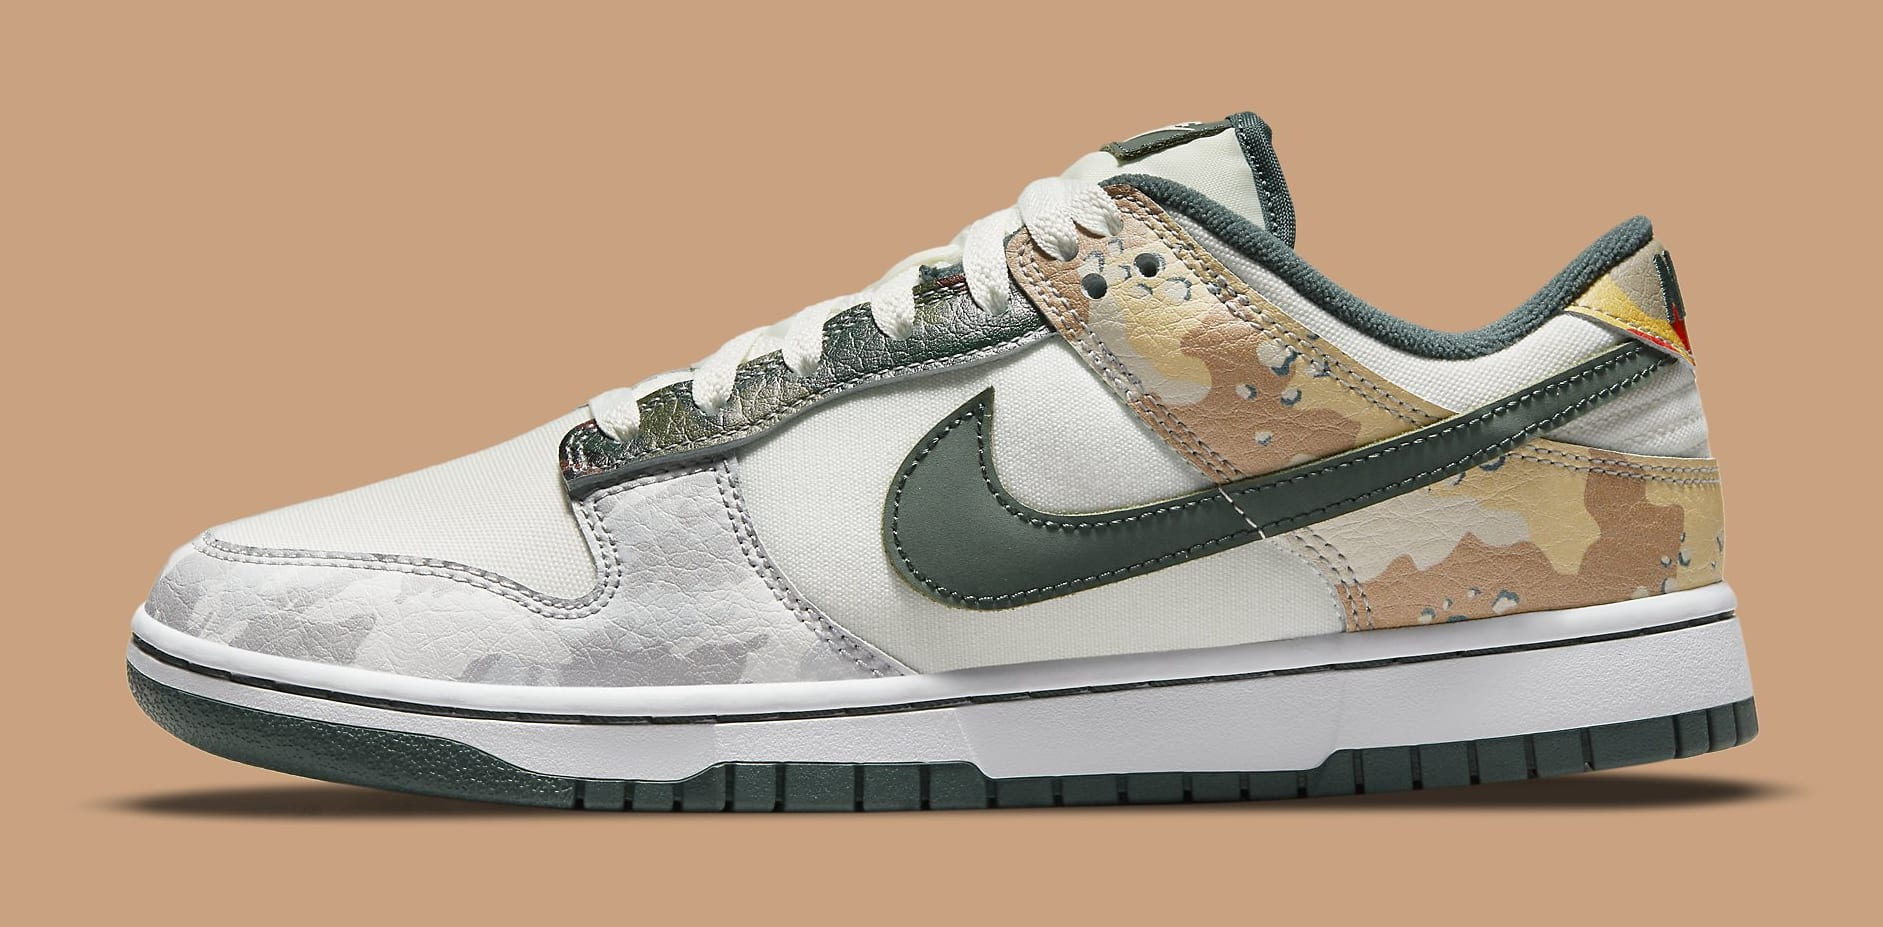 Nike Dunk Low 'Sail Multi-Camo' DH0957-100 Lateral